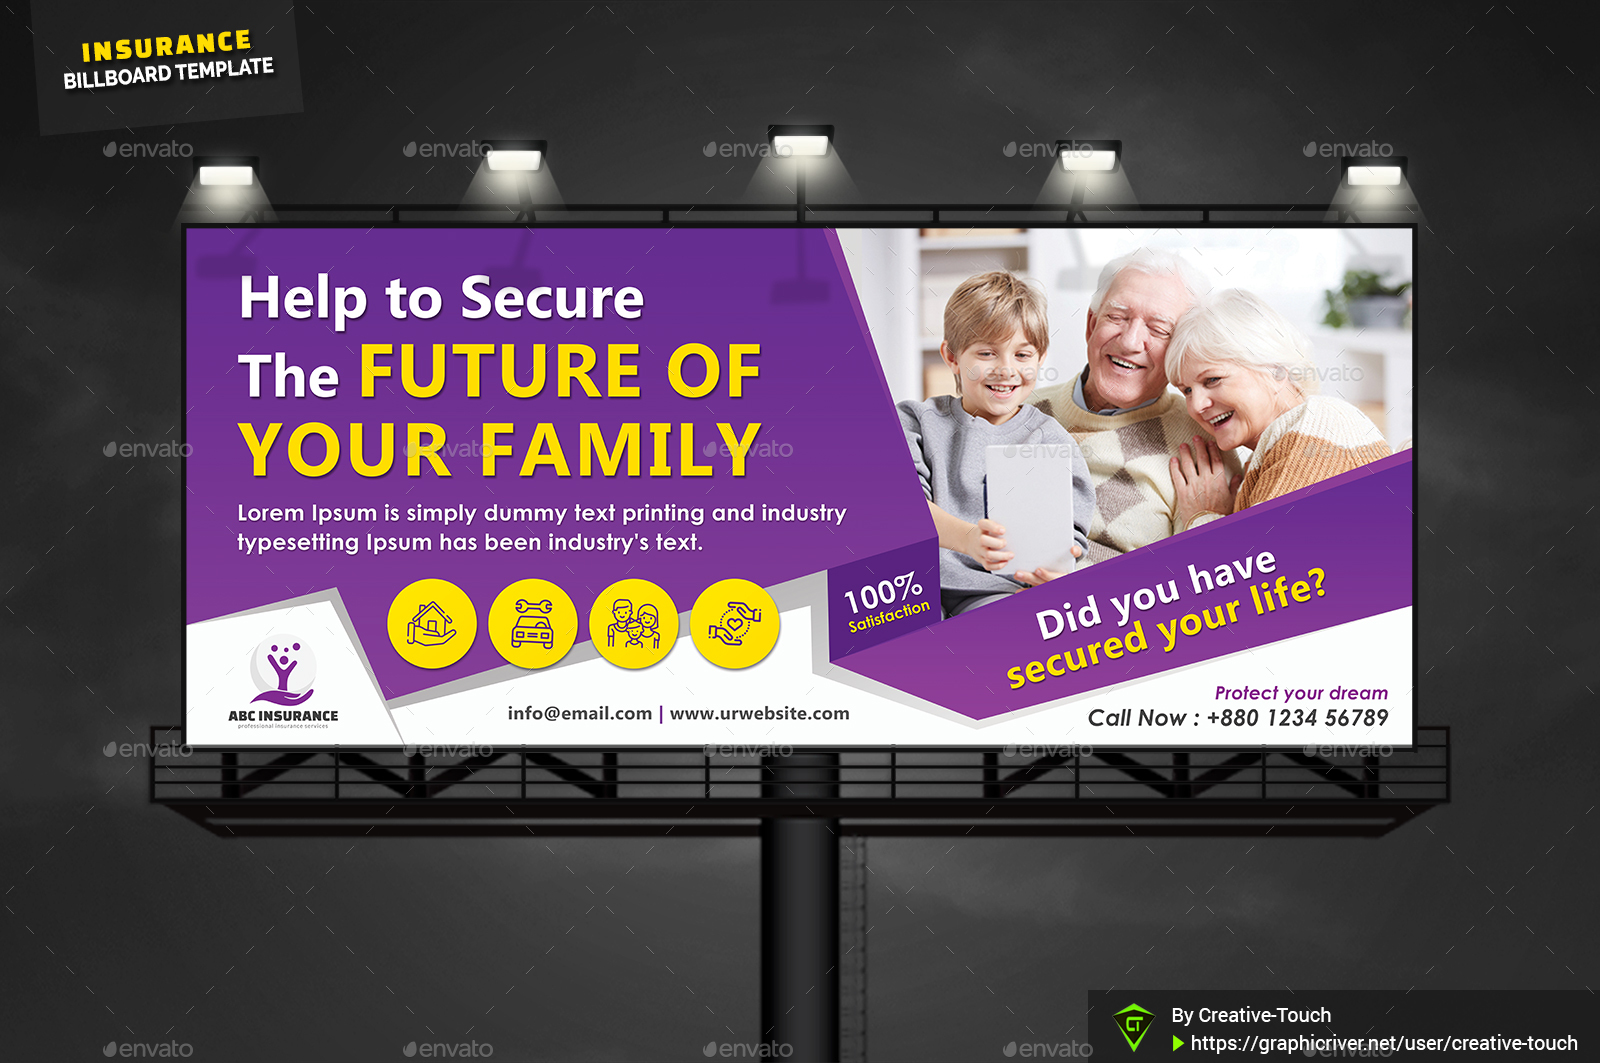 Insurance Business Billboard by Creative-Touch | GraphicRiver